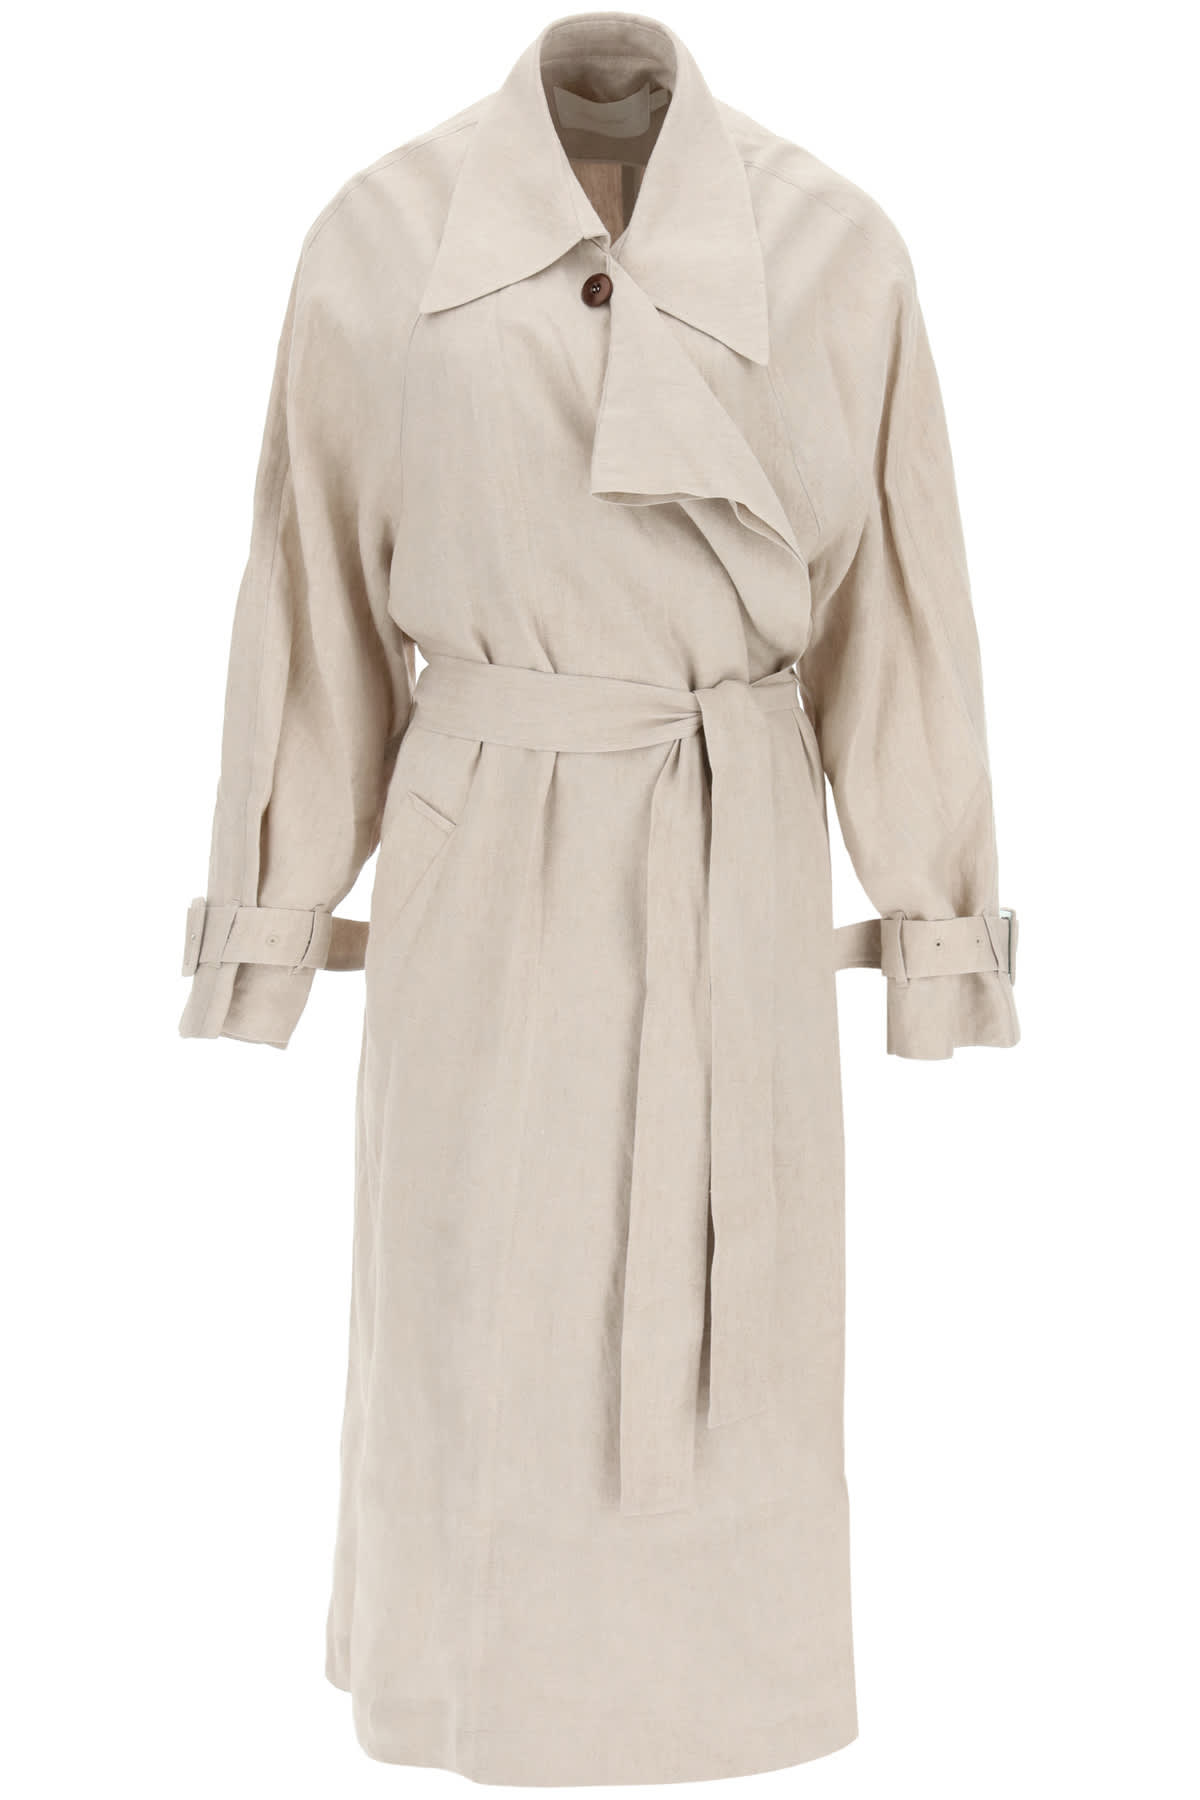 Low Classic Linens LINEN TRENCH